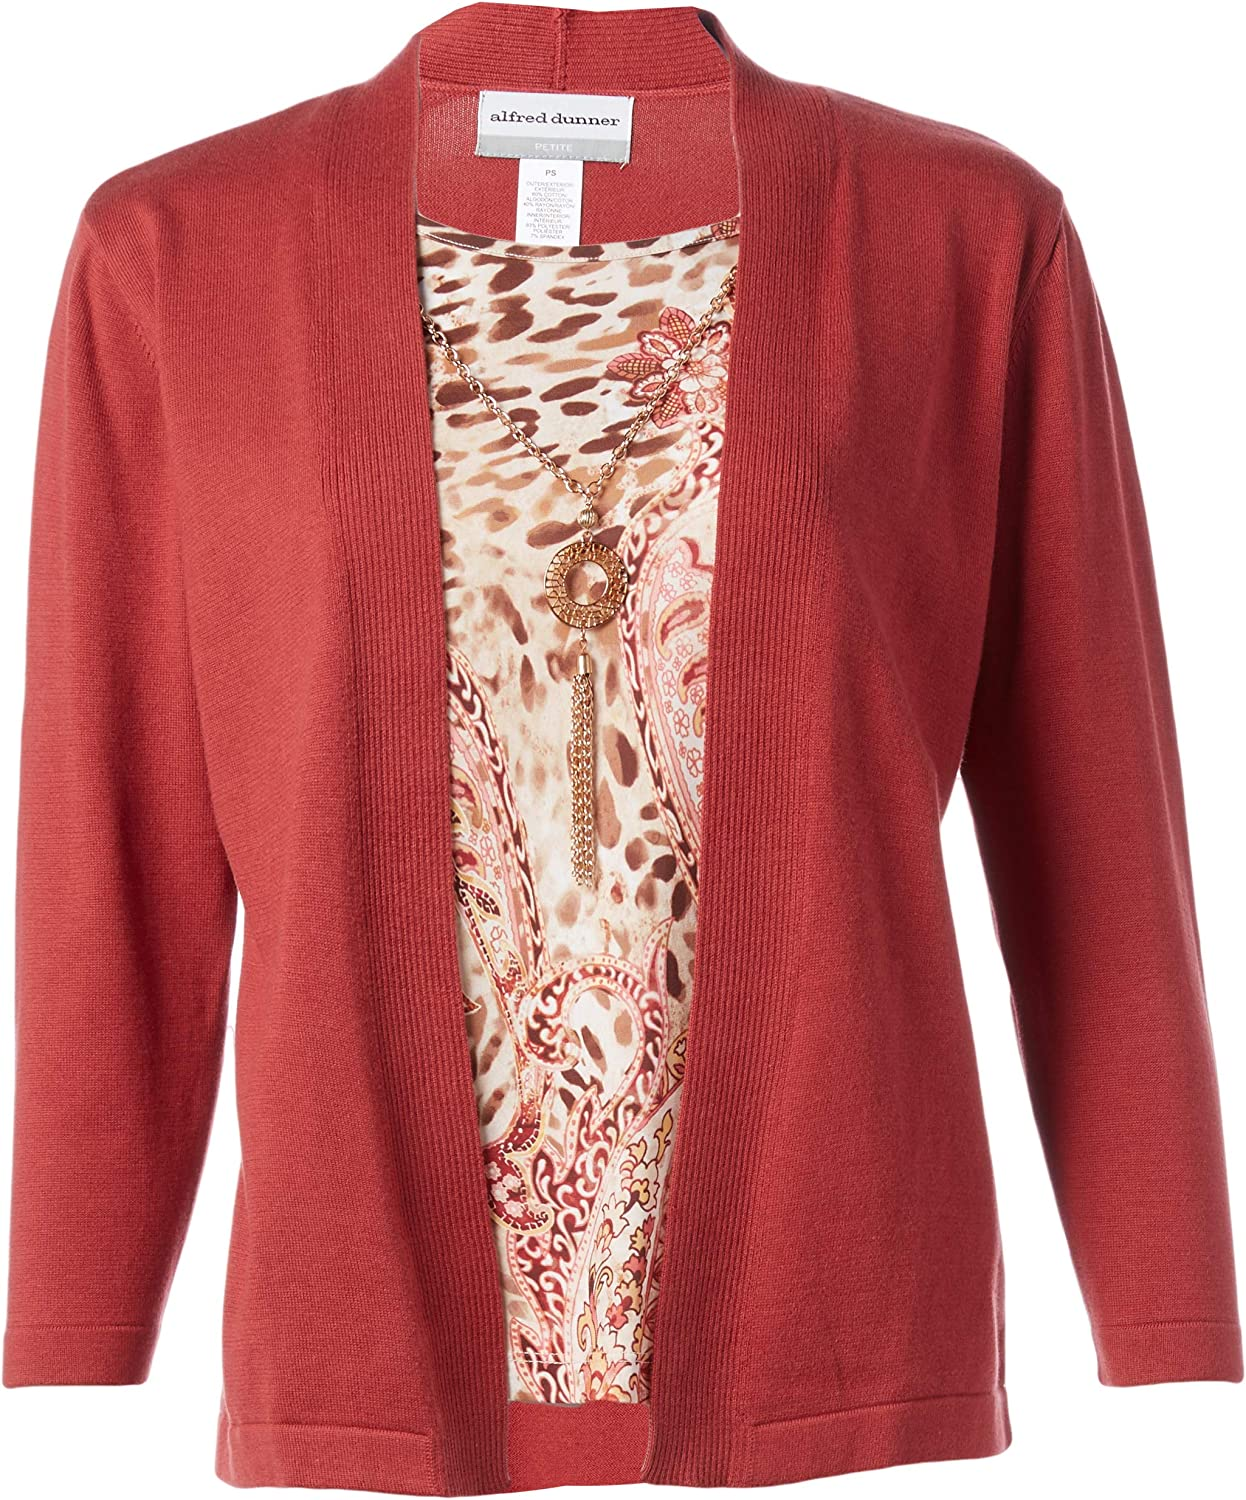 Alfred Dunner Women's Petite Two for One Sweater